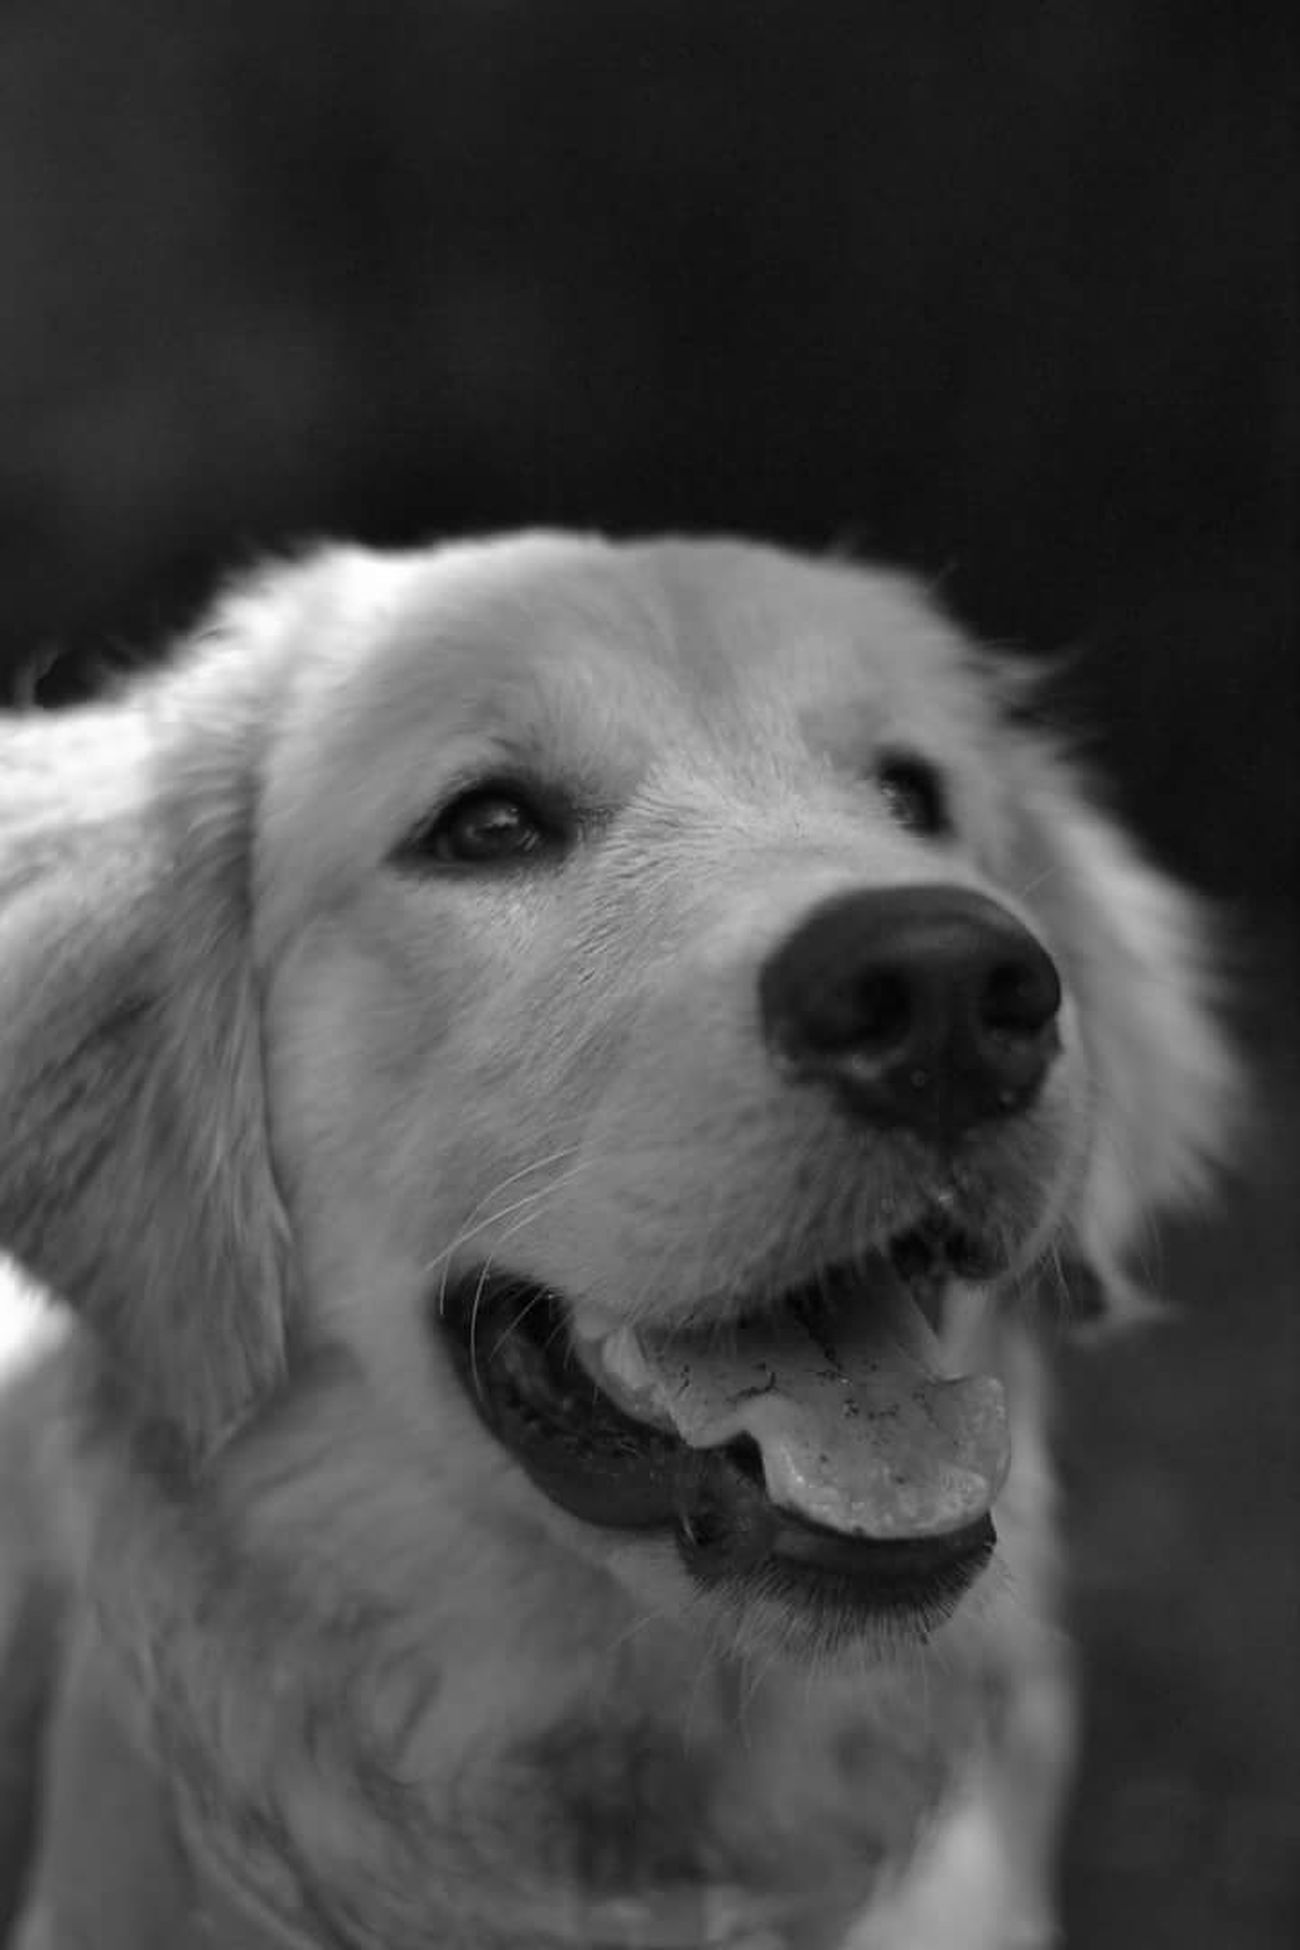 Dog One Animal Pets Domestic Animals 3XSPUnity Black And White Photooftheday Street Life Sreetphotographer Black & White Streetphotography Photo Close-up Street Day